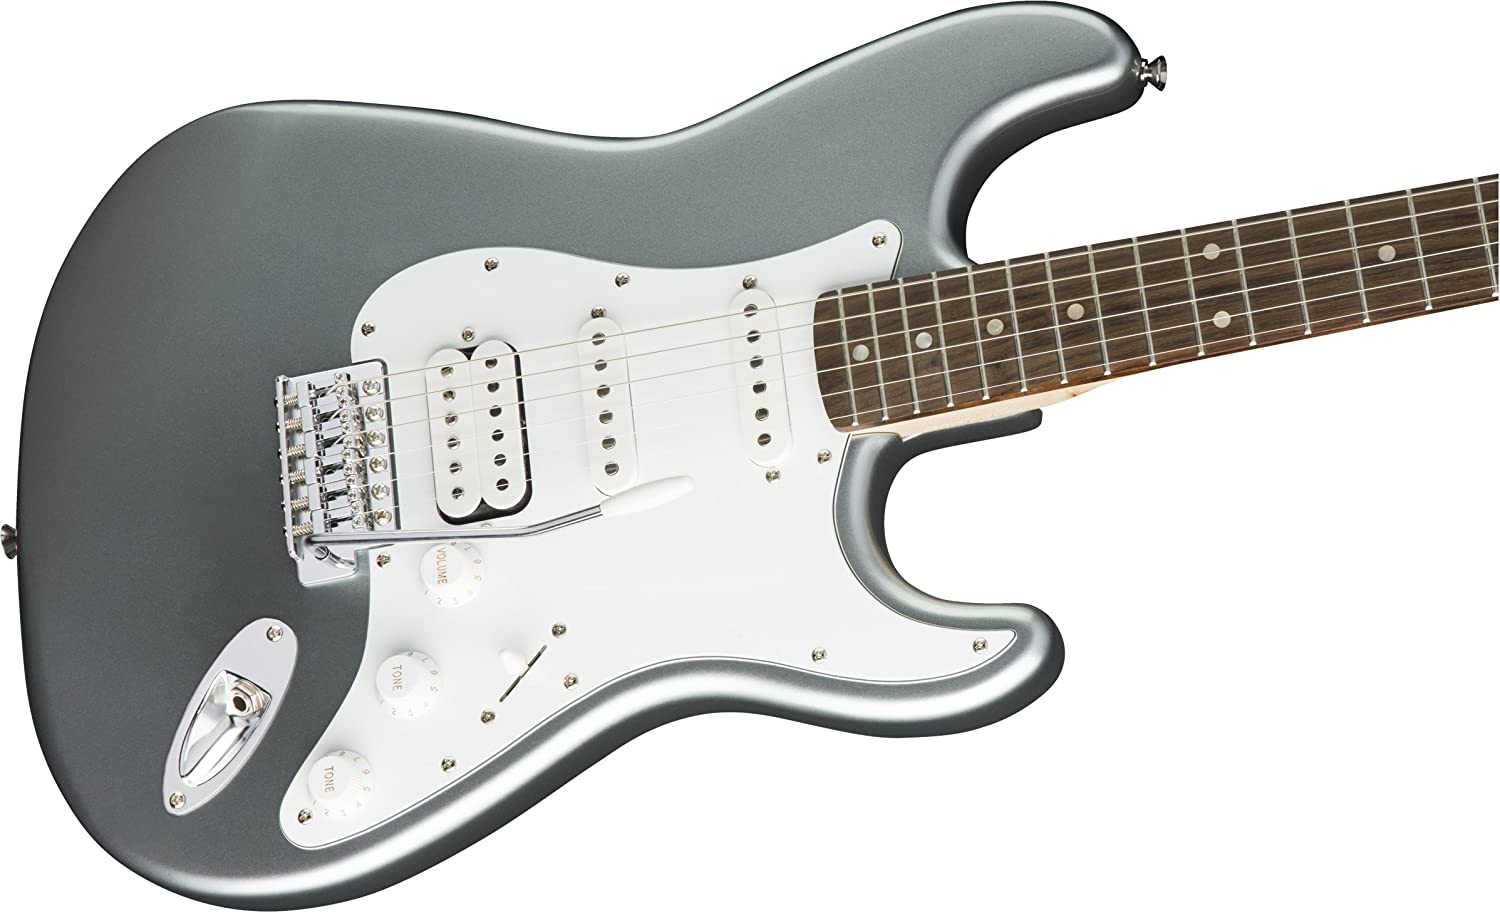 Squier by Fender Affinity Stratocaster HSS review